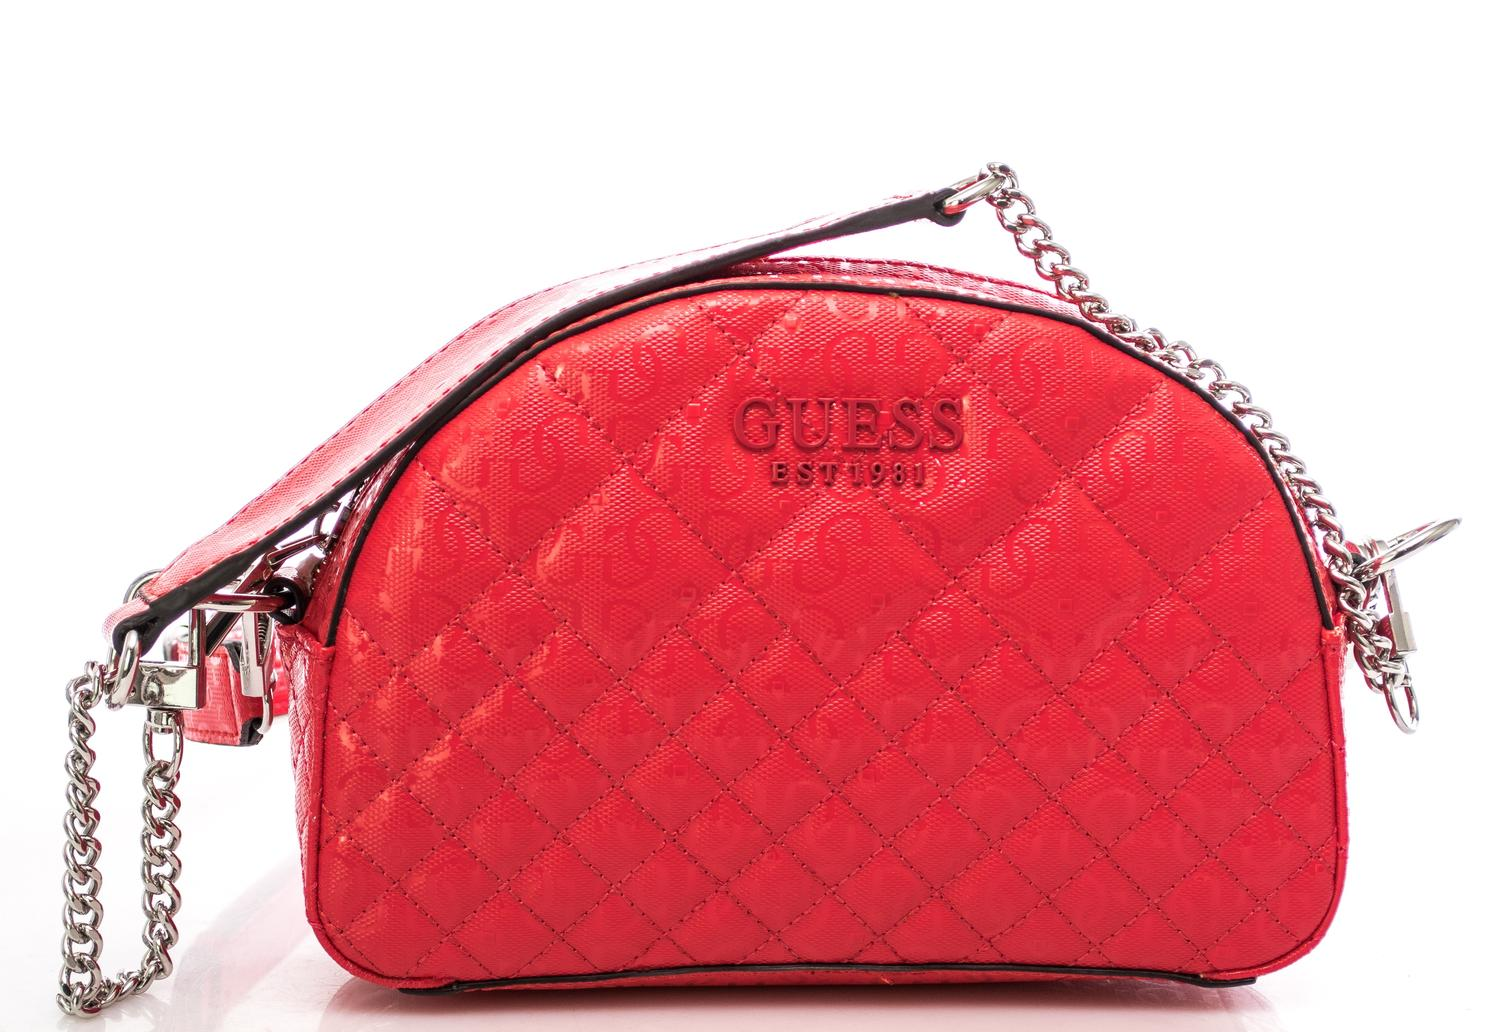 23 Best Guess images | Guess handbags, Guess bags, Purses